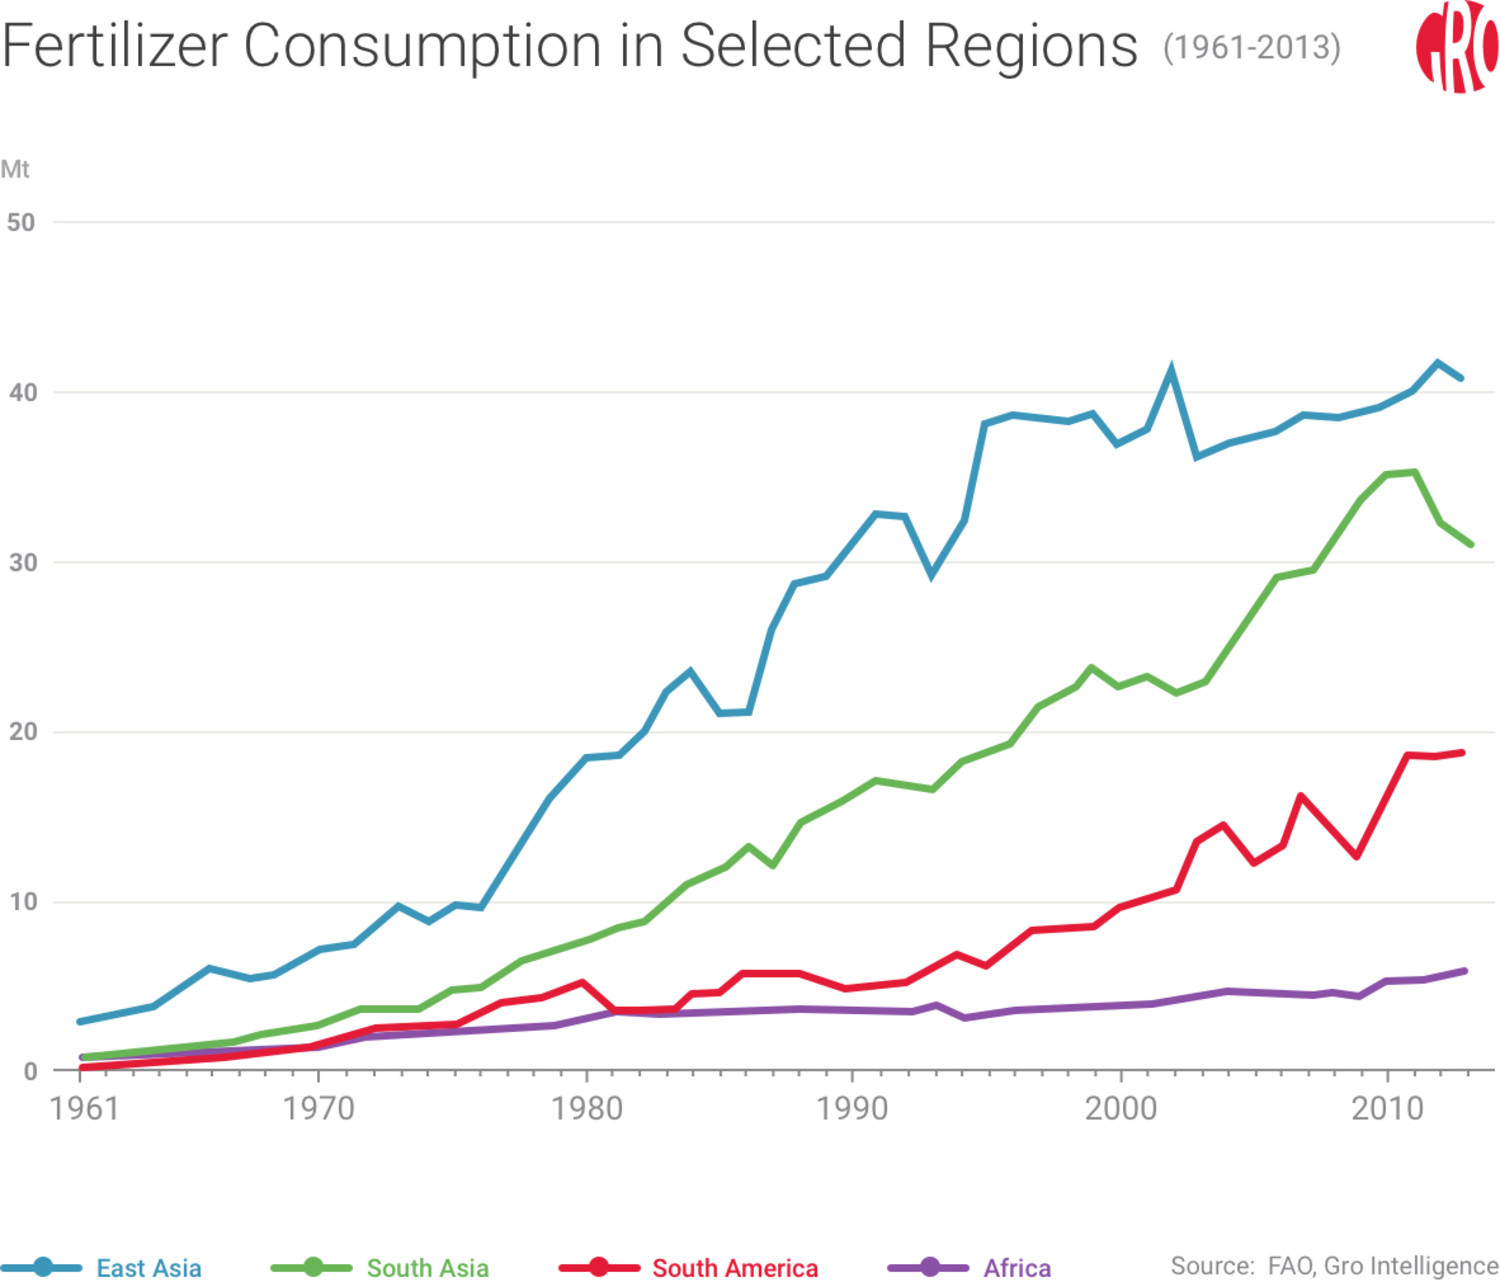 Fertilizer Consumption in Selected Regions